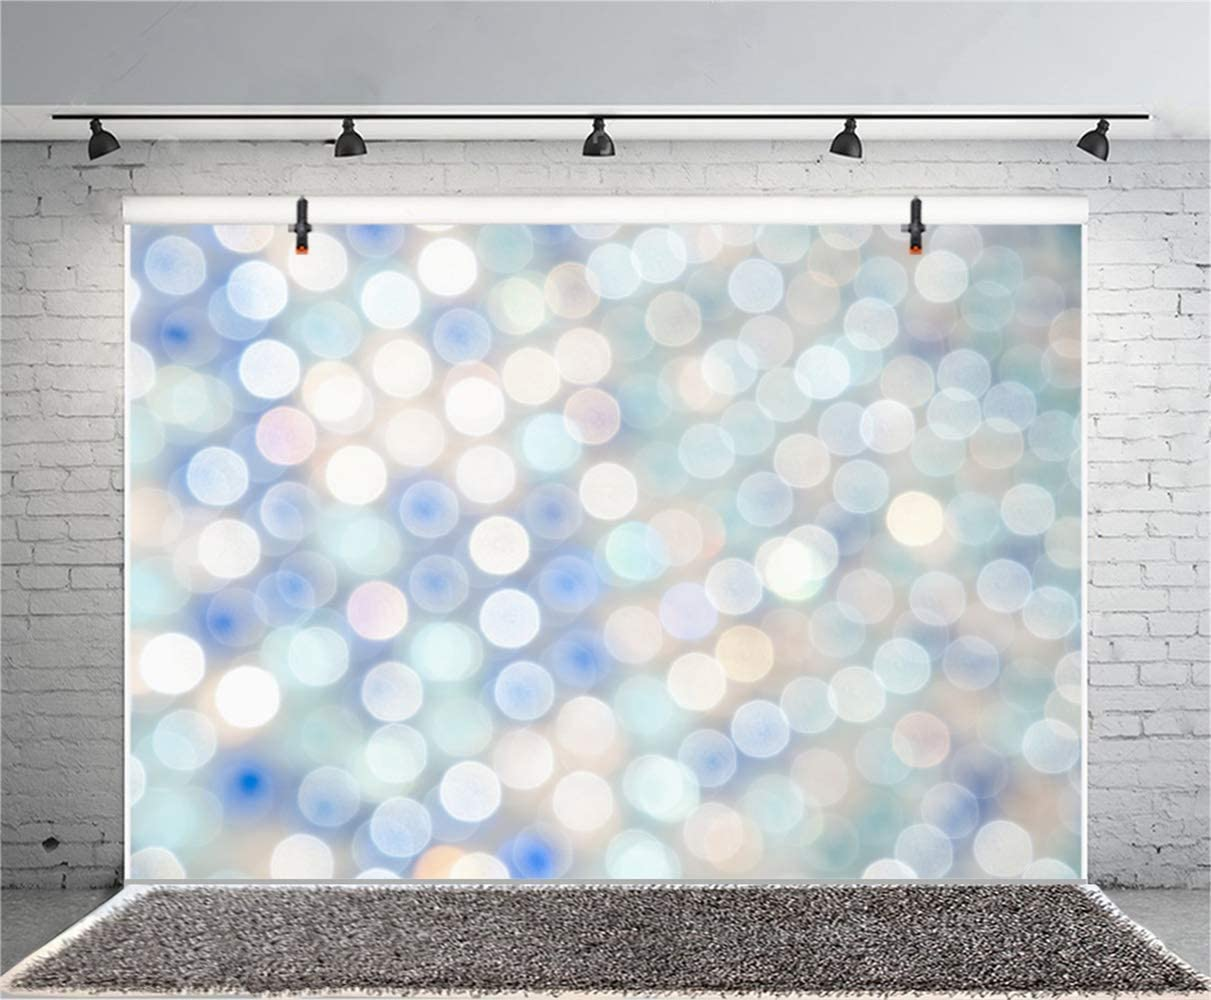 8x6.5ft Abstract Dizzy Colorful Bokeh Haloes Backdrop Polyester New Year Birthday Photography Background Child Kids Baby Girl Adult Portrait Shoot Studio Props Wallpaper